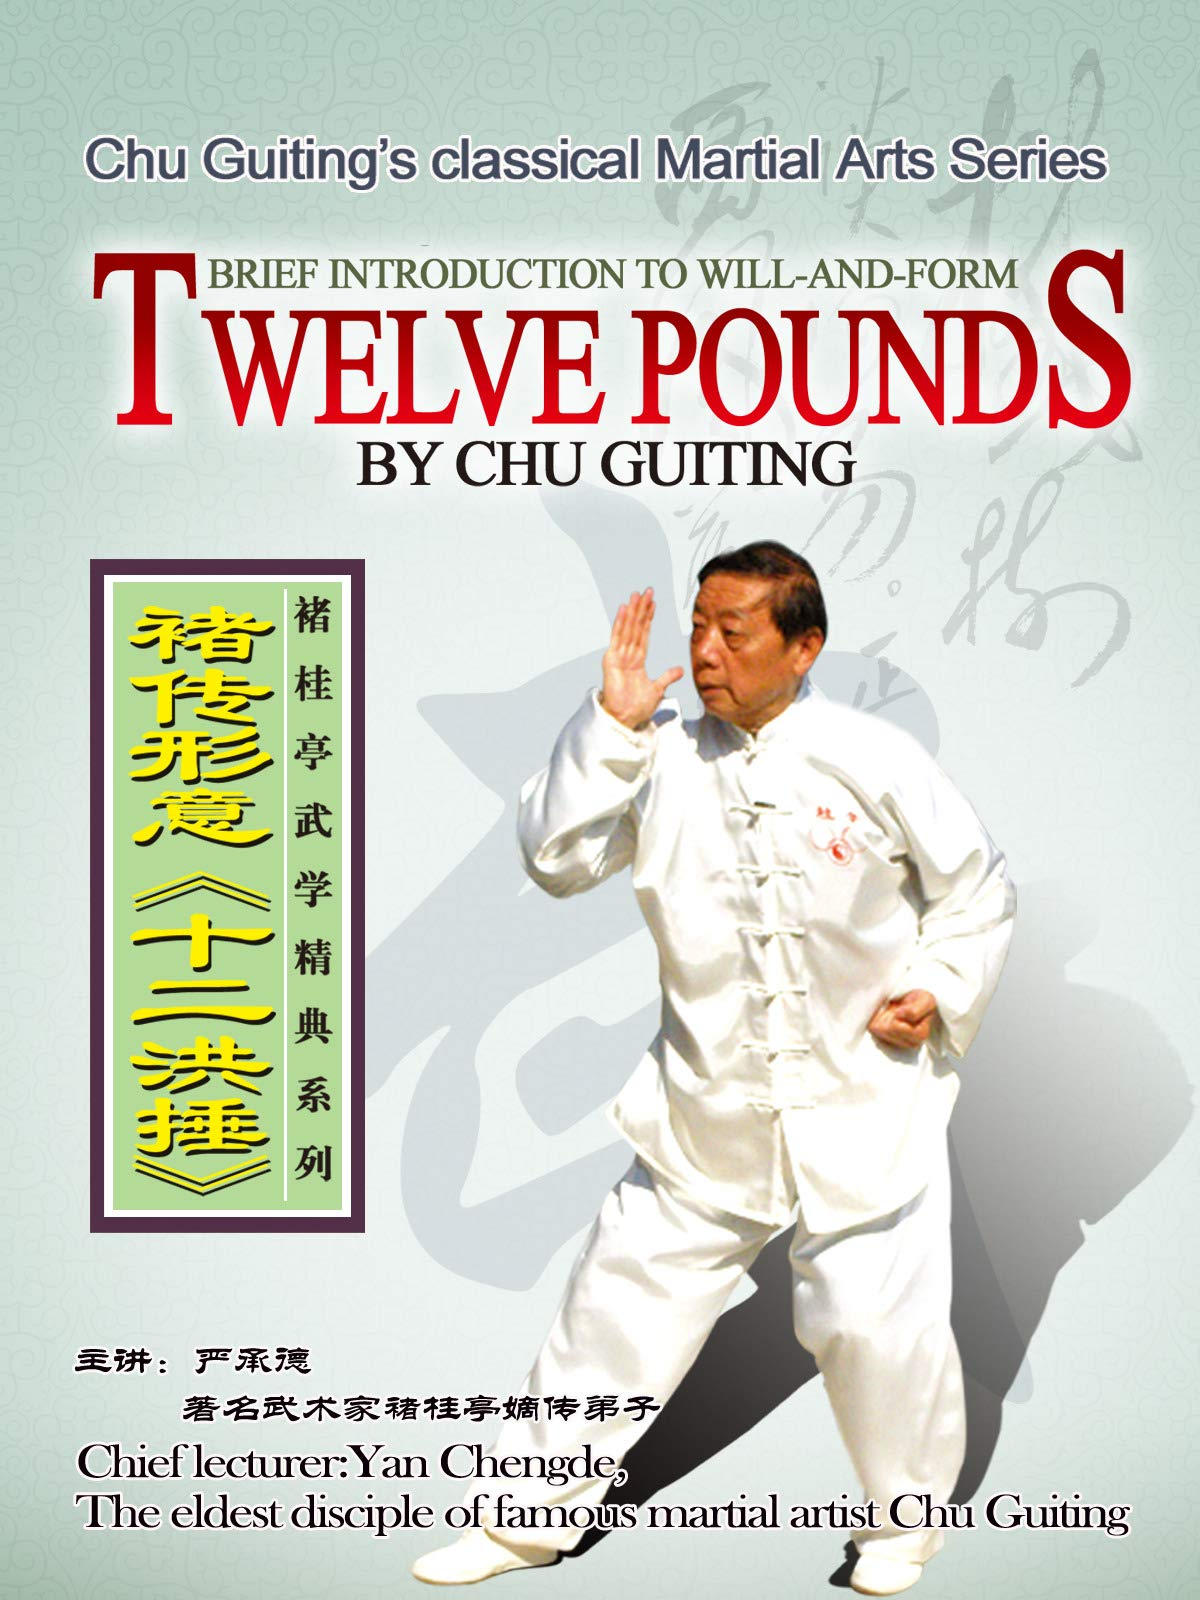 Chu Guiting's classical Martial Arts Series-Brief Introduction to Will-and-Form Twelve Pounds by Chu Guiting